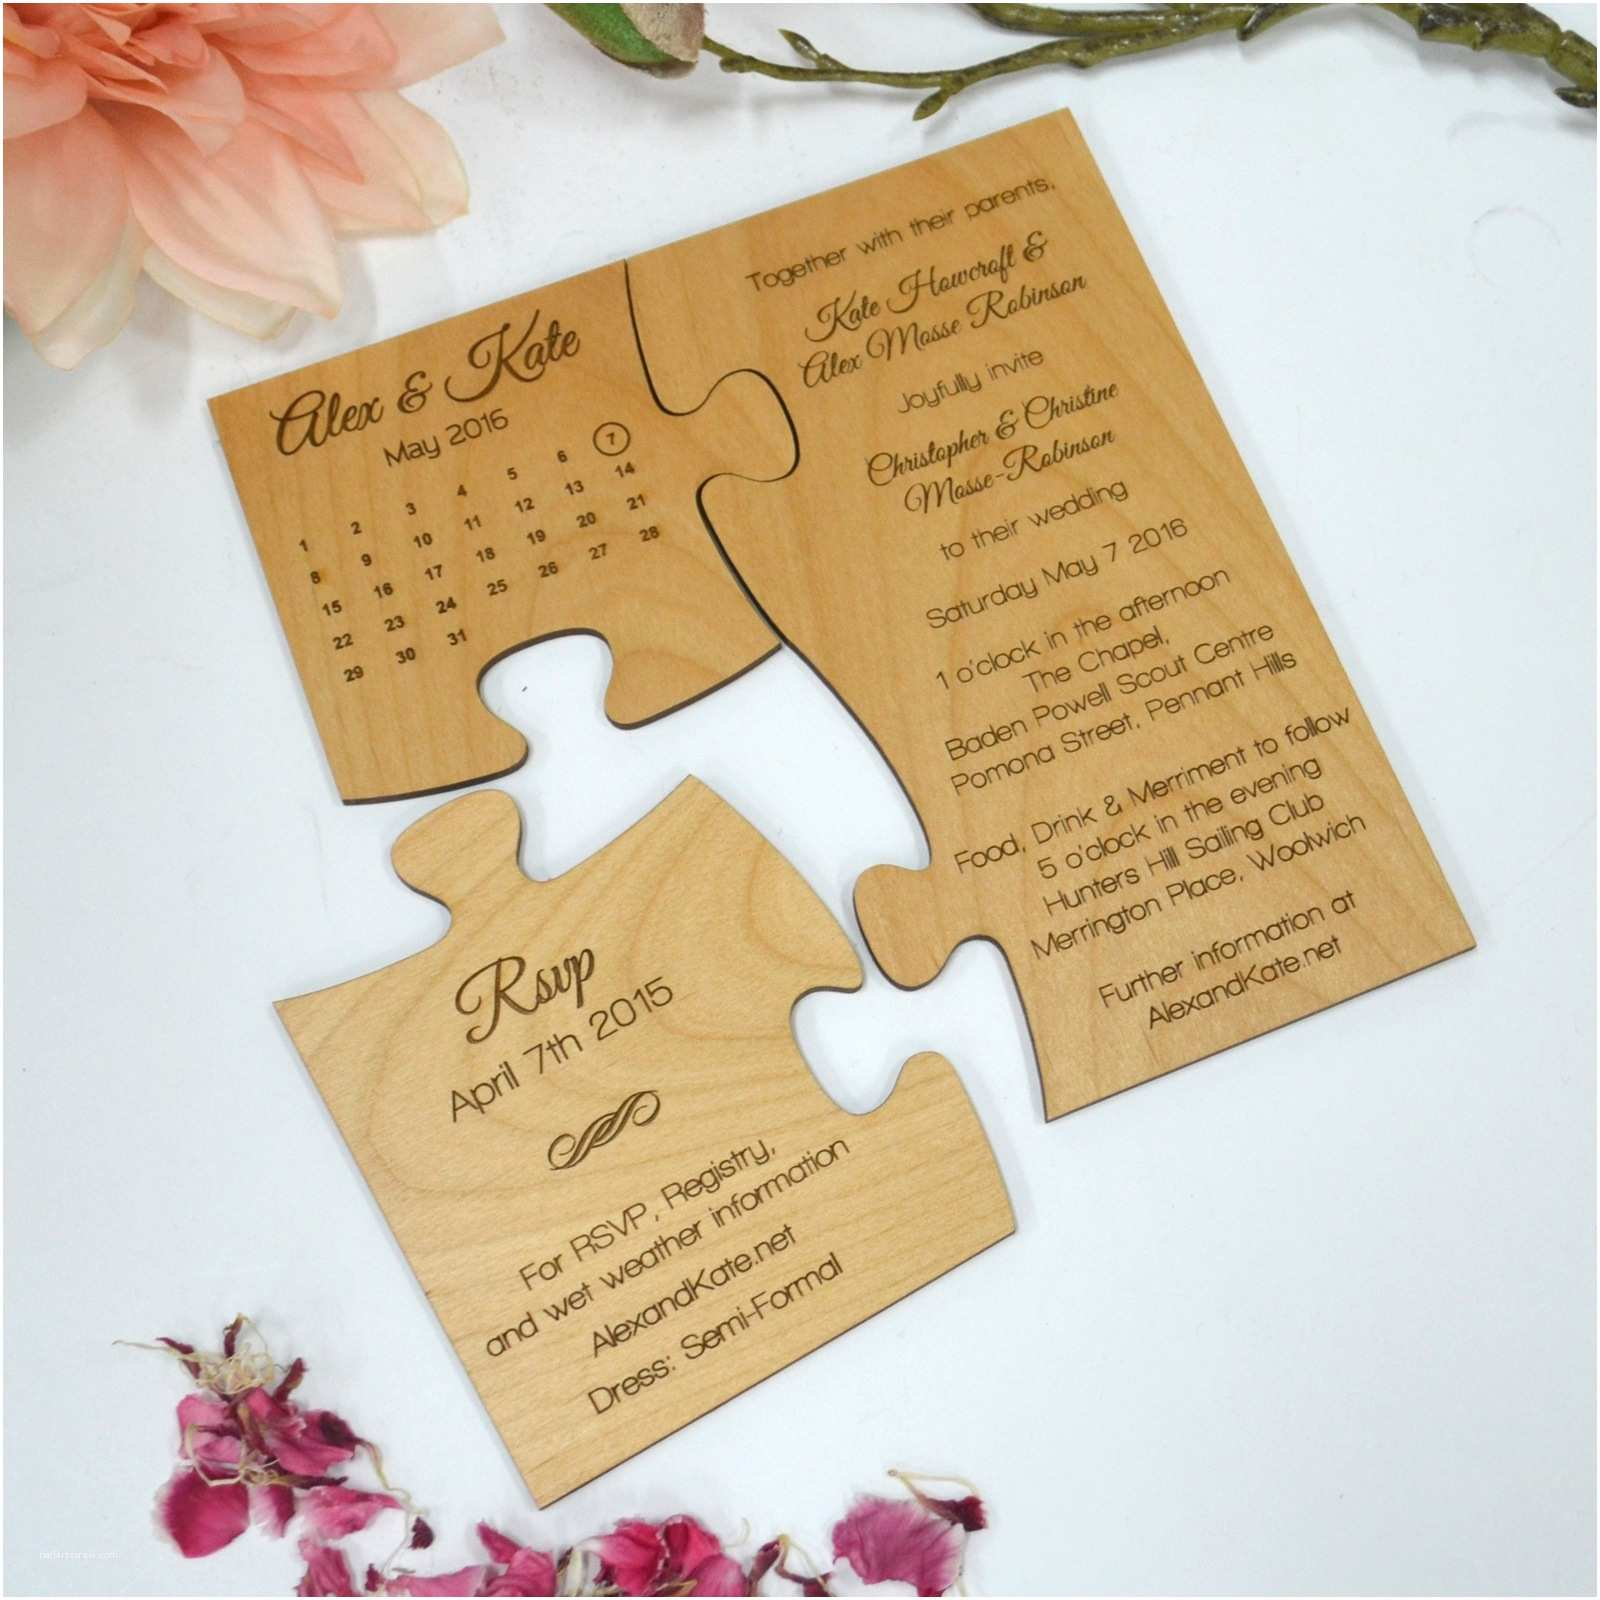 Engraved Wedding Invitations Cost Unique Save The Dates Image Collections Wedding